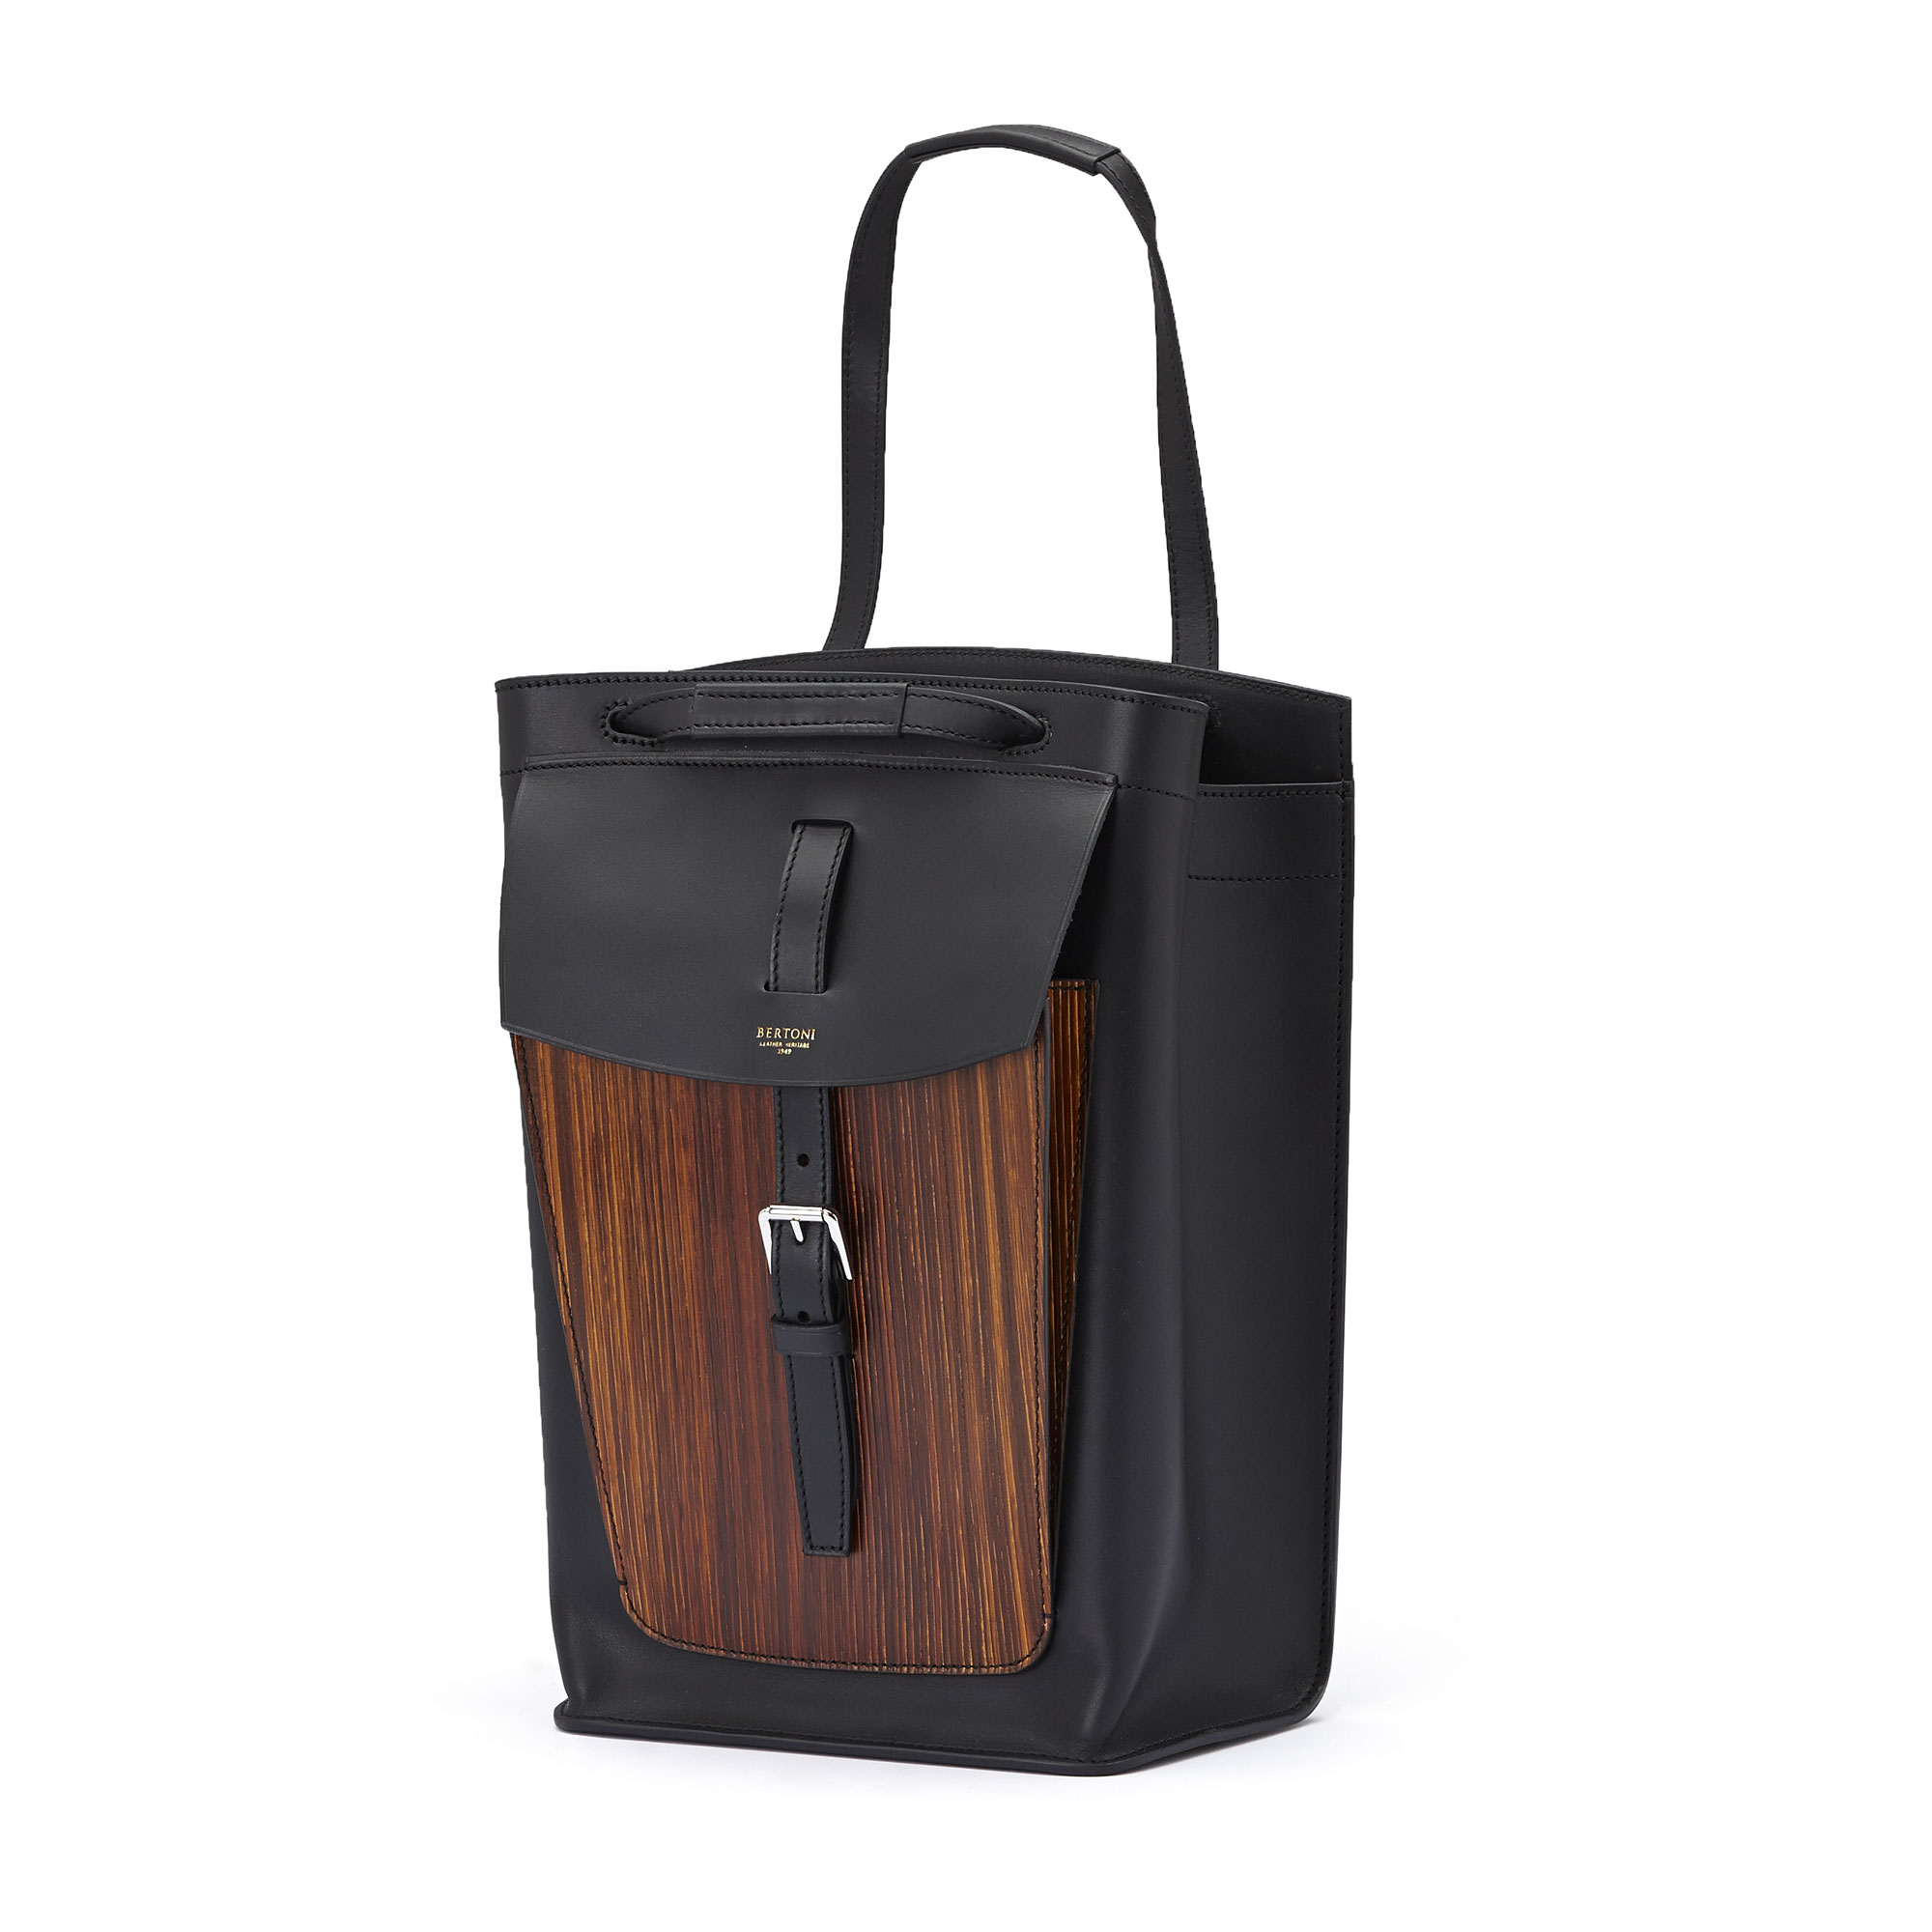 The black french calf, wood leather Arizona bucket bag by Bertoni 1949 02